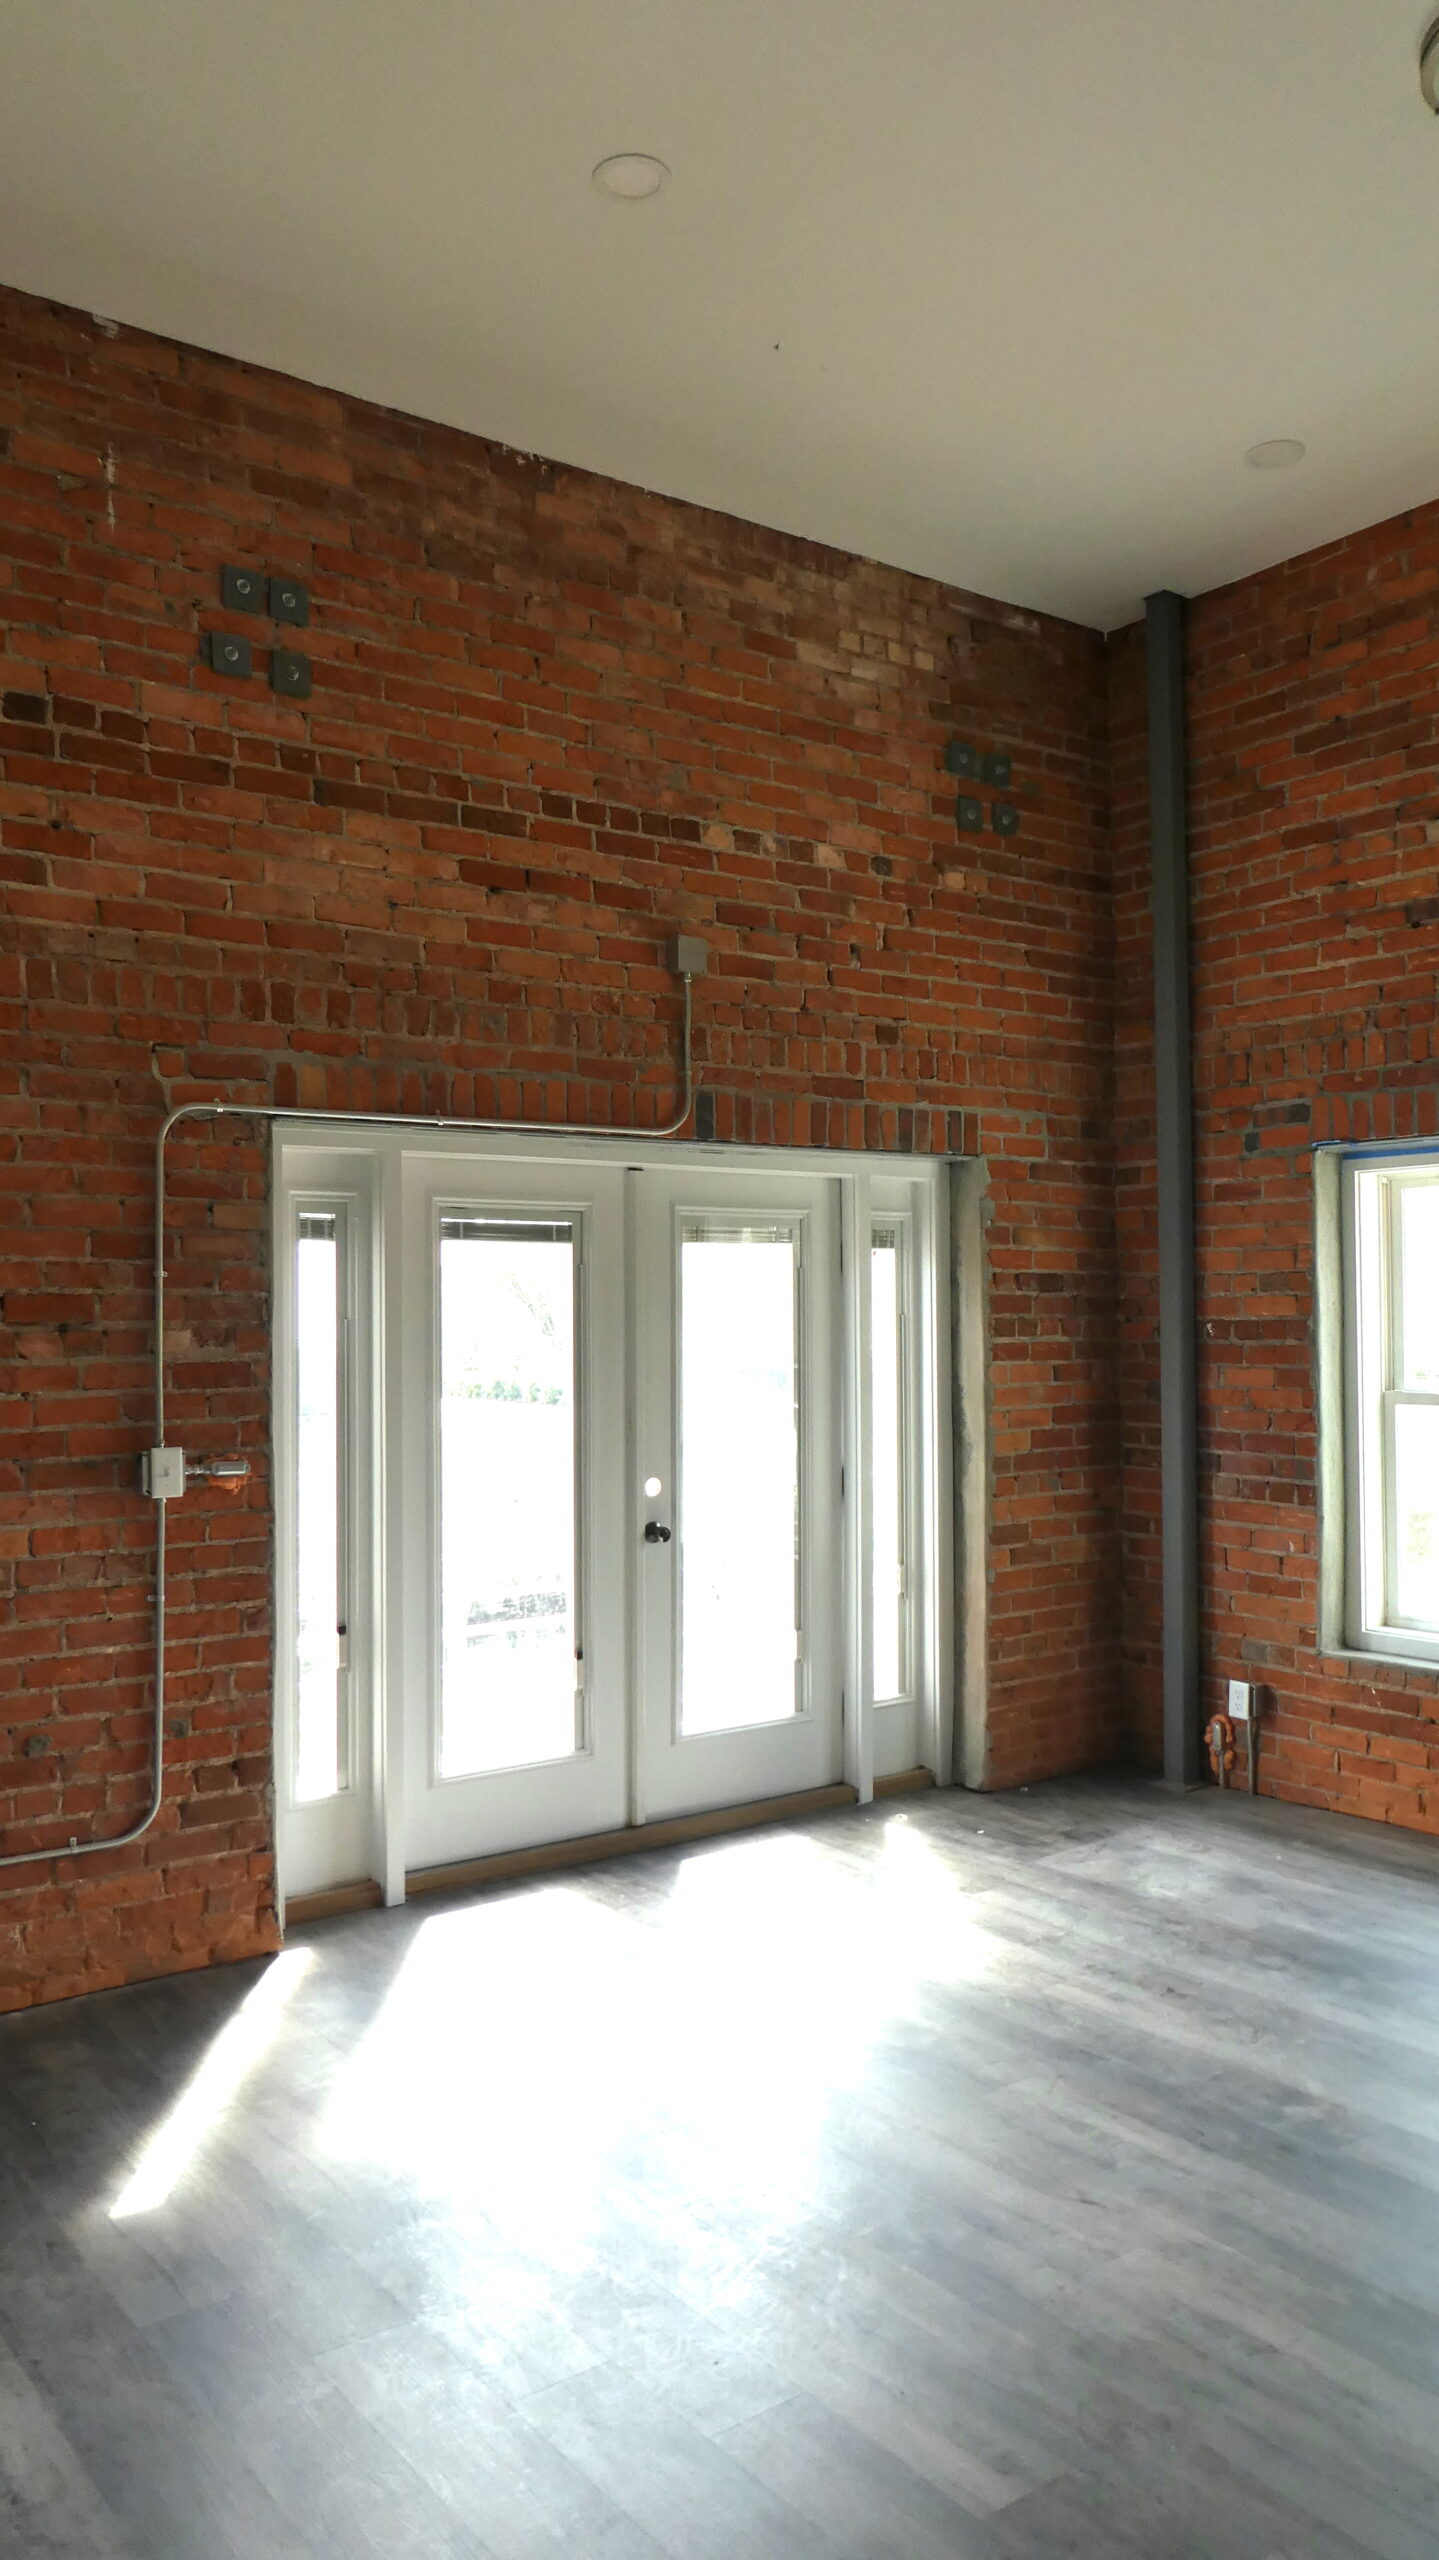 Photo of the French doors from the living room to the patio in an Indie Ice Loft unit